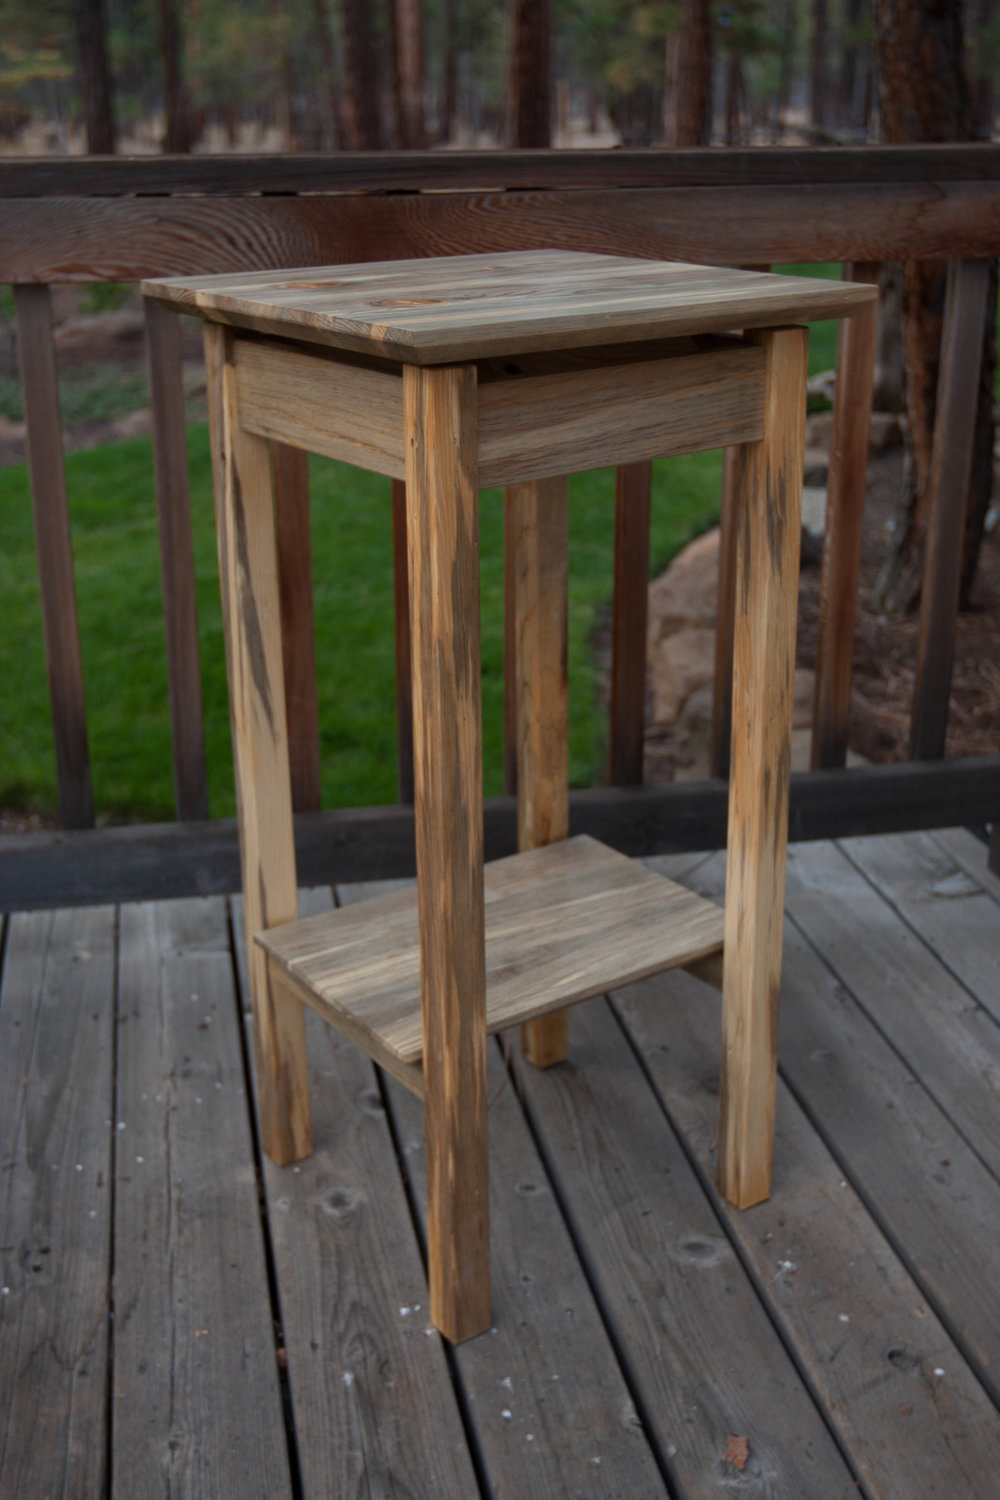 Pine Pedestal with Shelf by Bob Bousquet